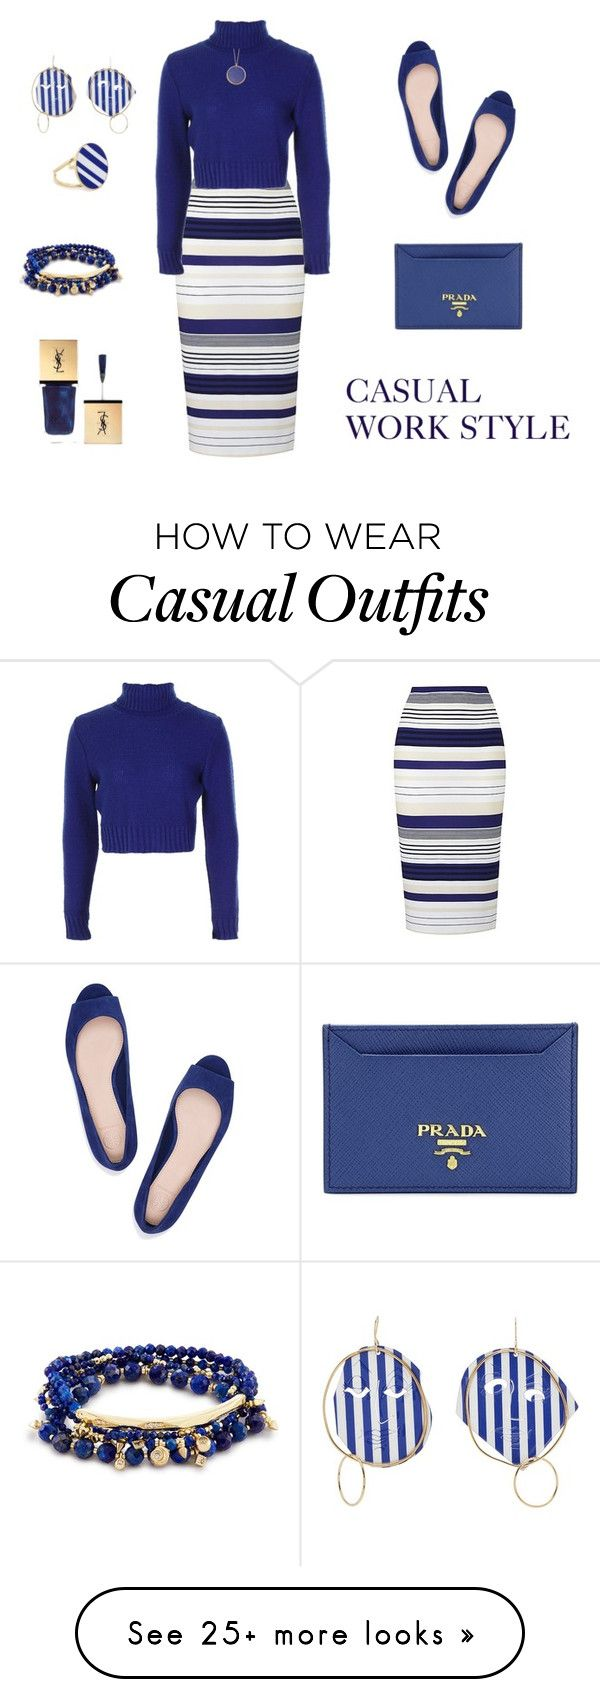 """CASUAL STRIPE WORK STYLE"" by rebeccadavisblogger on Polyvore featuring Boohoo, Tory Burch, Prada, J.W. Anderson, Joanna Laura Constantine, Astley Clarke and Christian Dior"